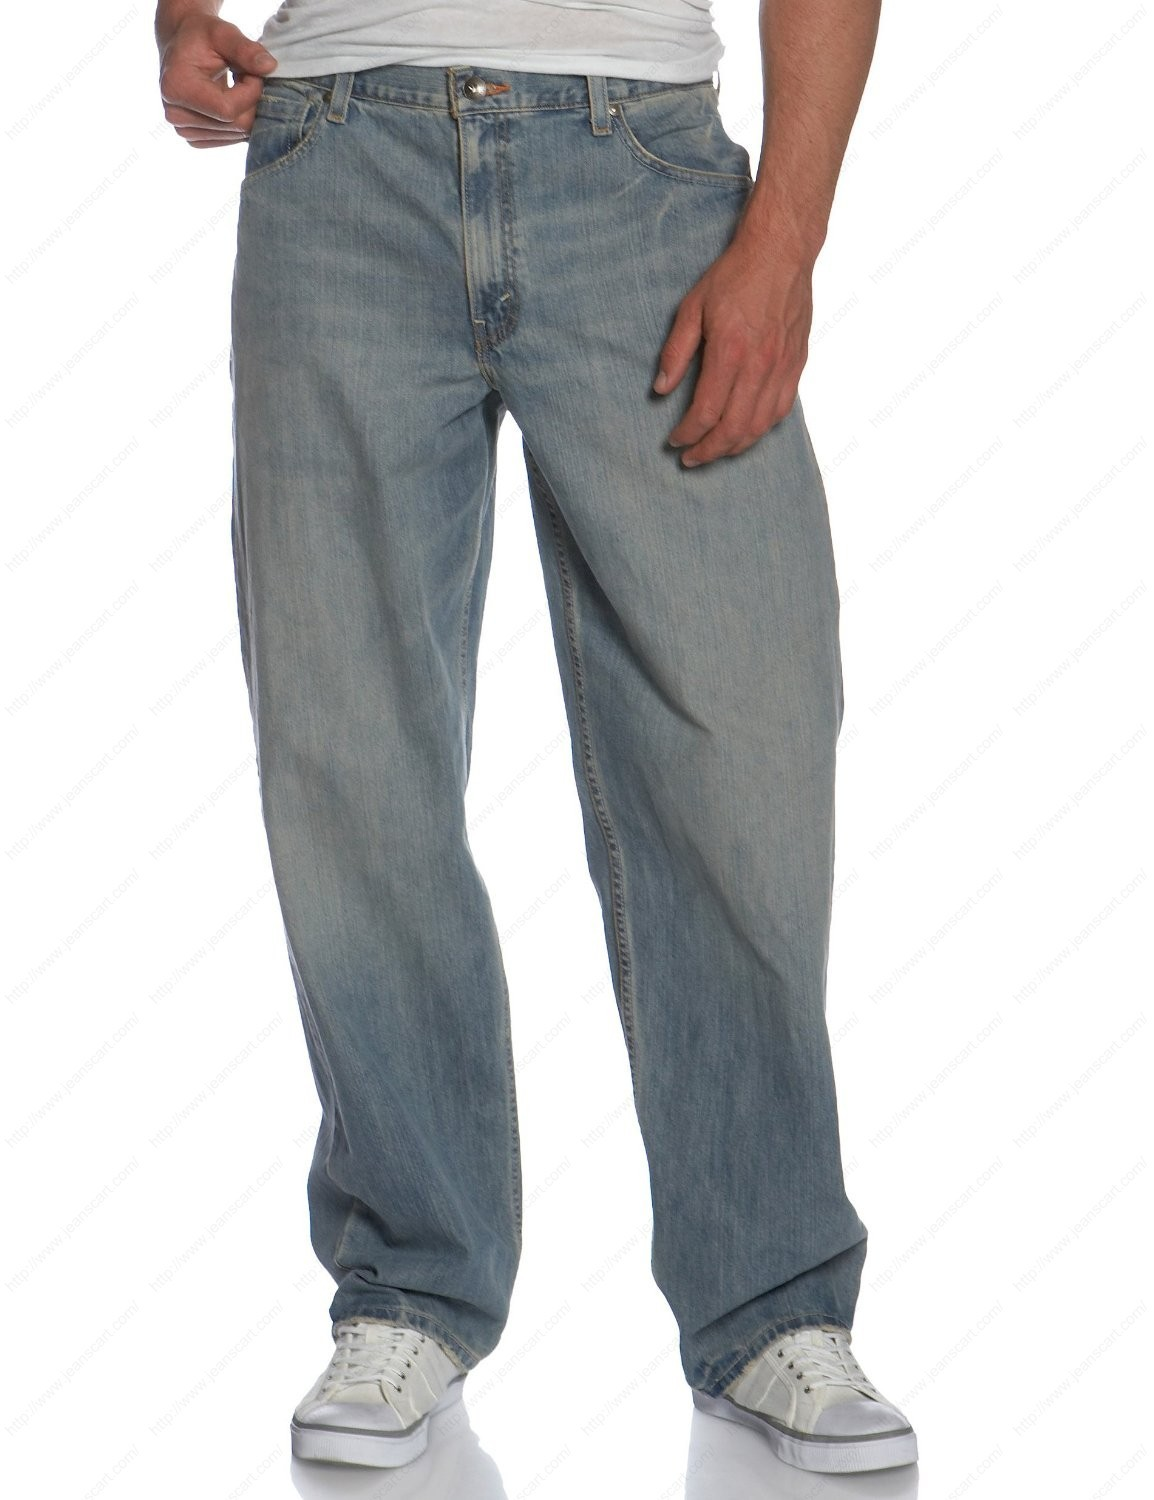 Baggy jeans for men – Global fashion jeans collection